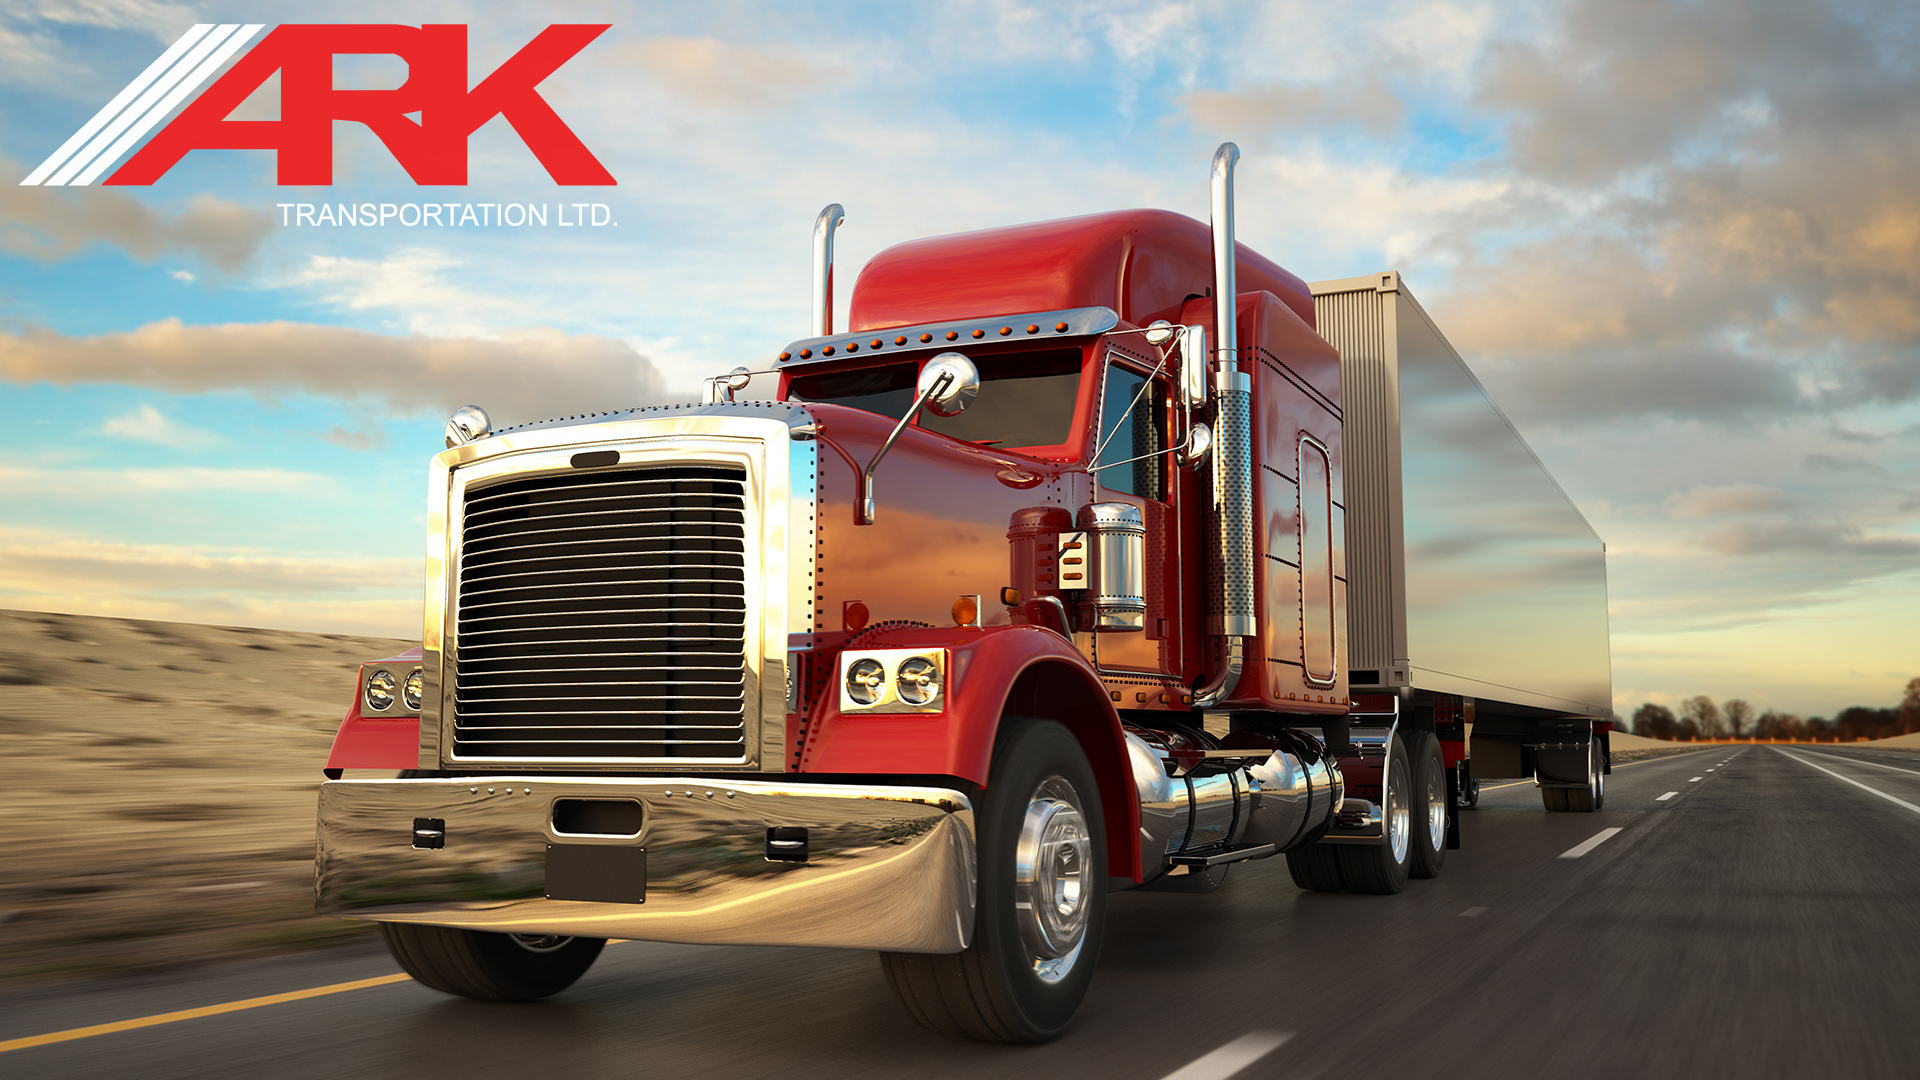 Why Are Truckload Prices So High in 2018?